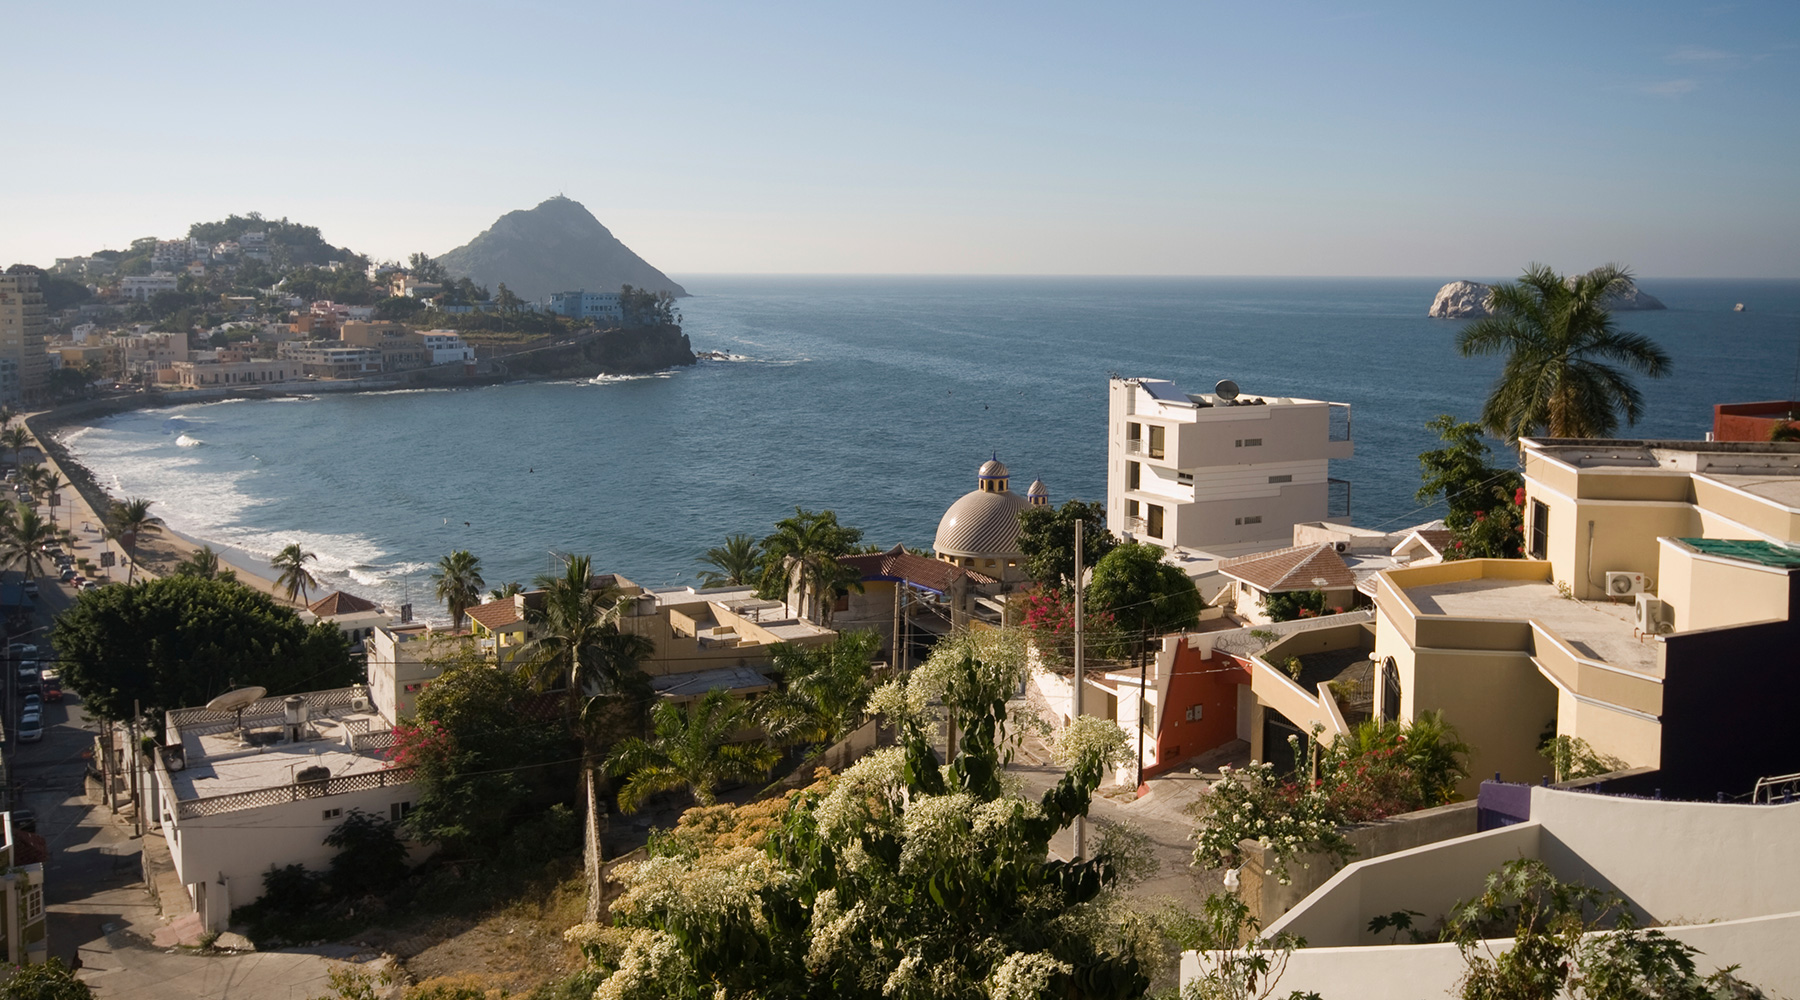 Mazatlan is one of Mexico's many charming seaside towns.